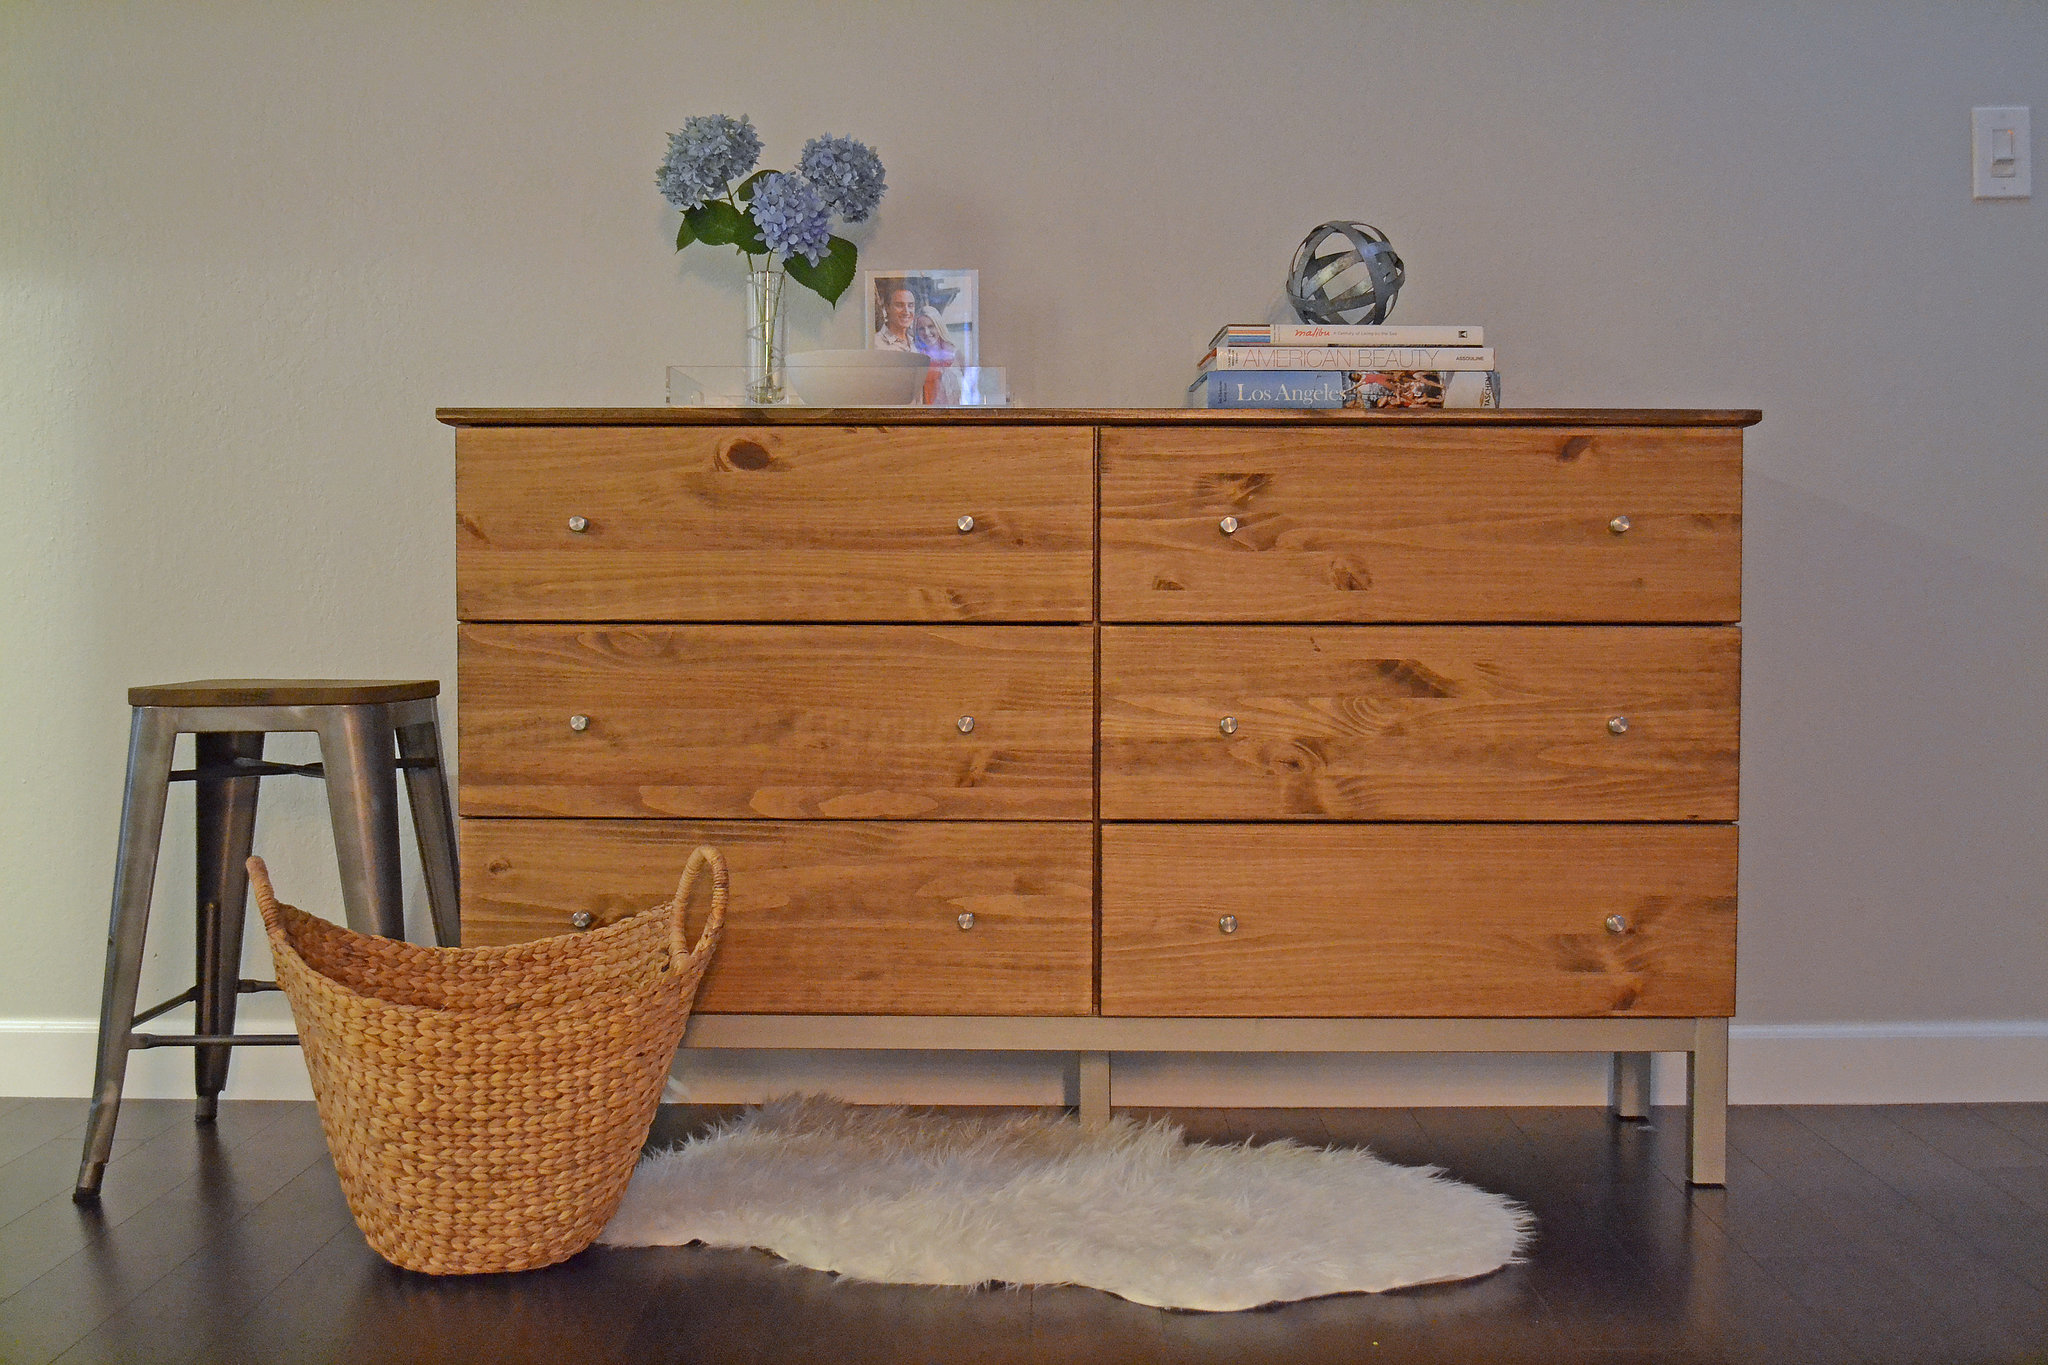 All it took was three simple steps to give it a new look! First, she stained it. When it comes to staining untreated wood, try brushing on a coat of conditioner first so that the stain goes on evenly. Photo: Lauren Turner